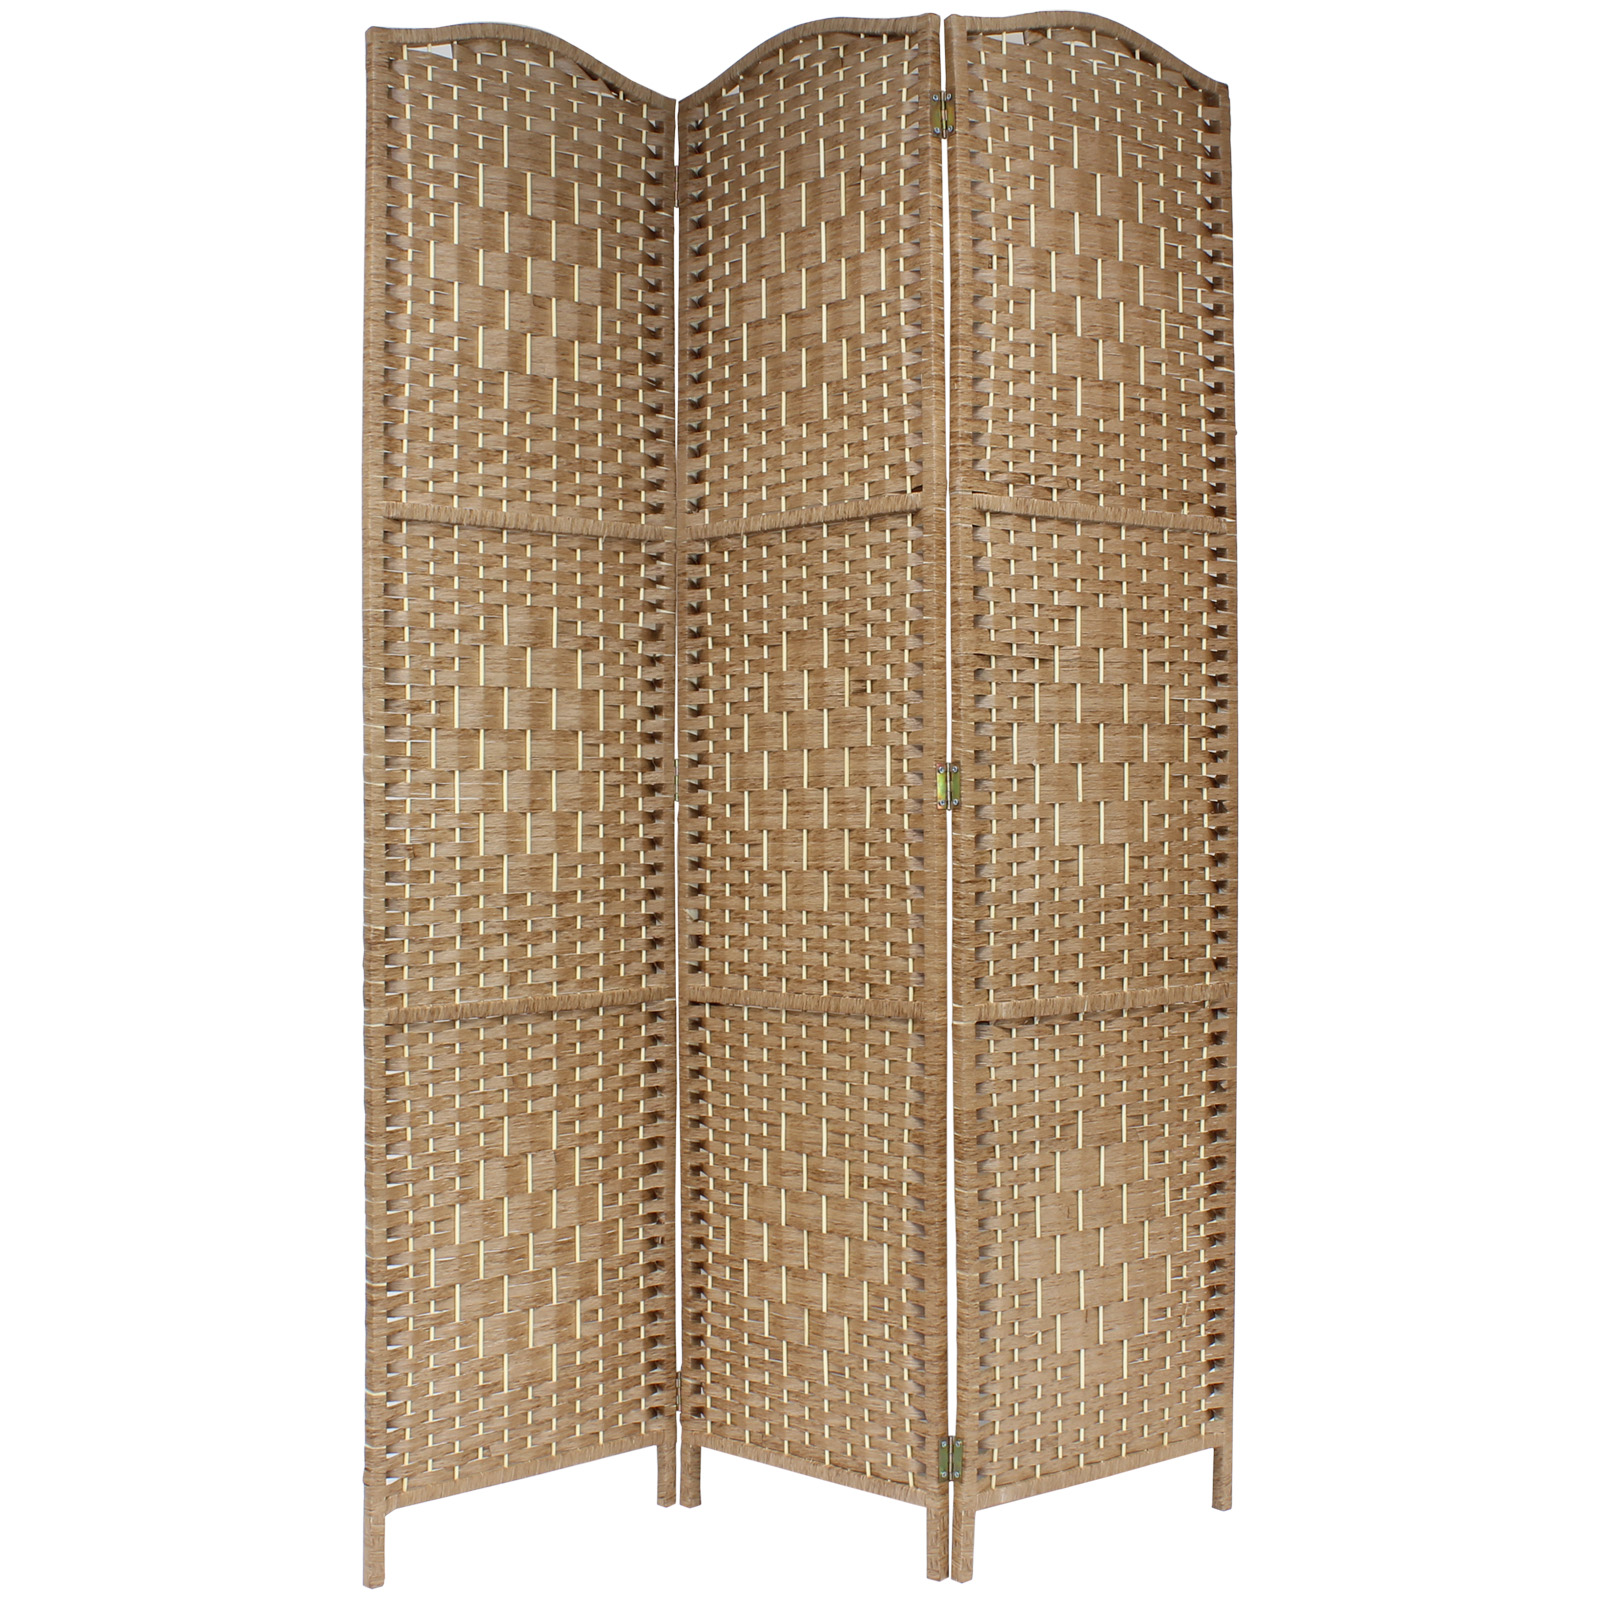 hand partition wicker sentinel room itm screen panelprivacy main separator divider woven made